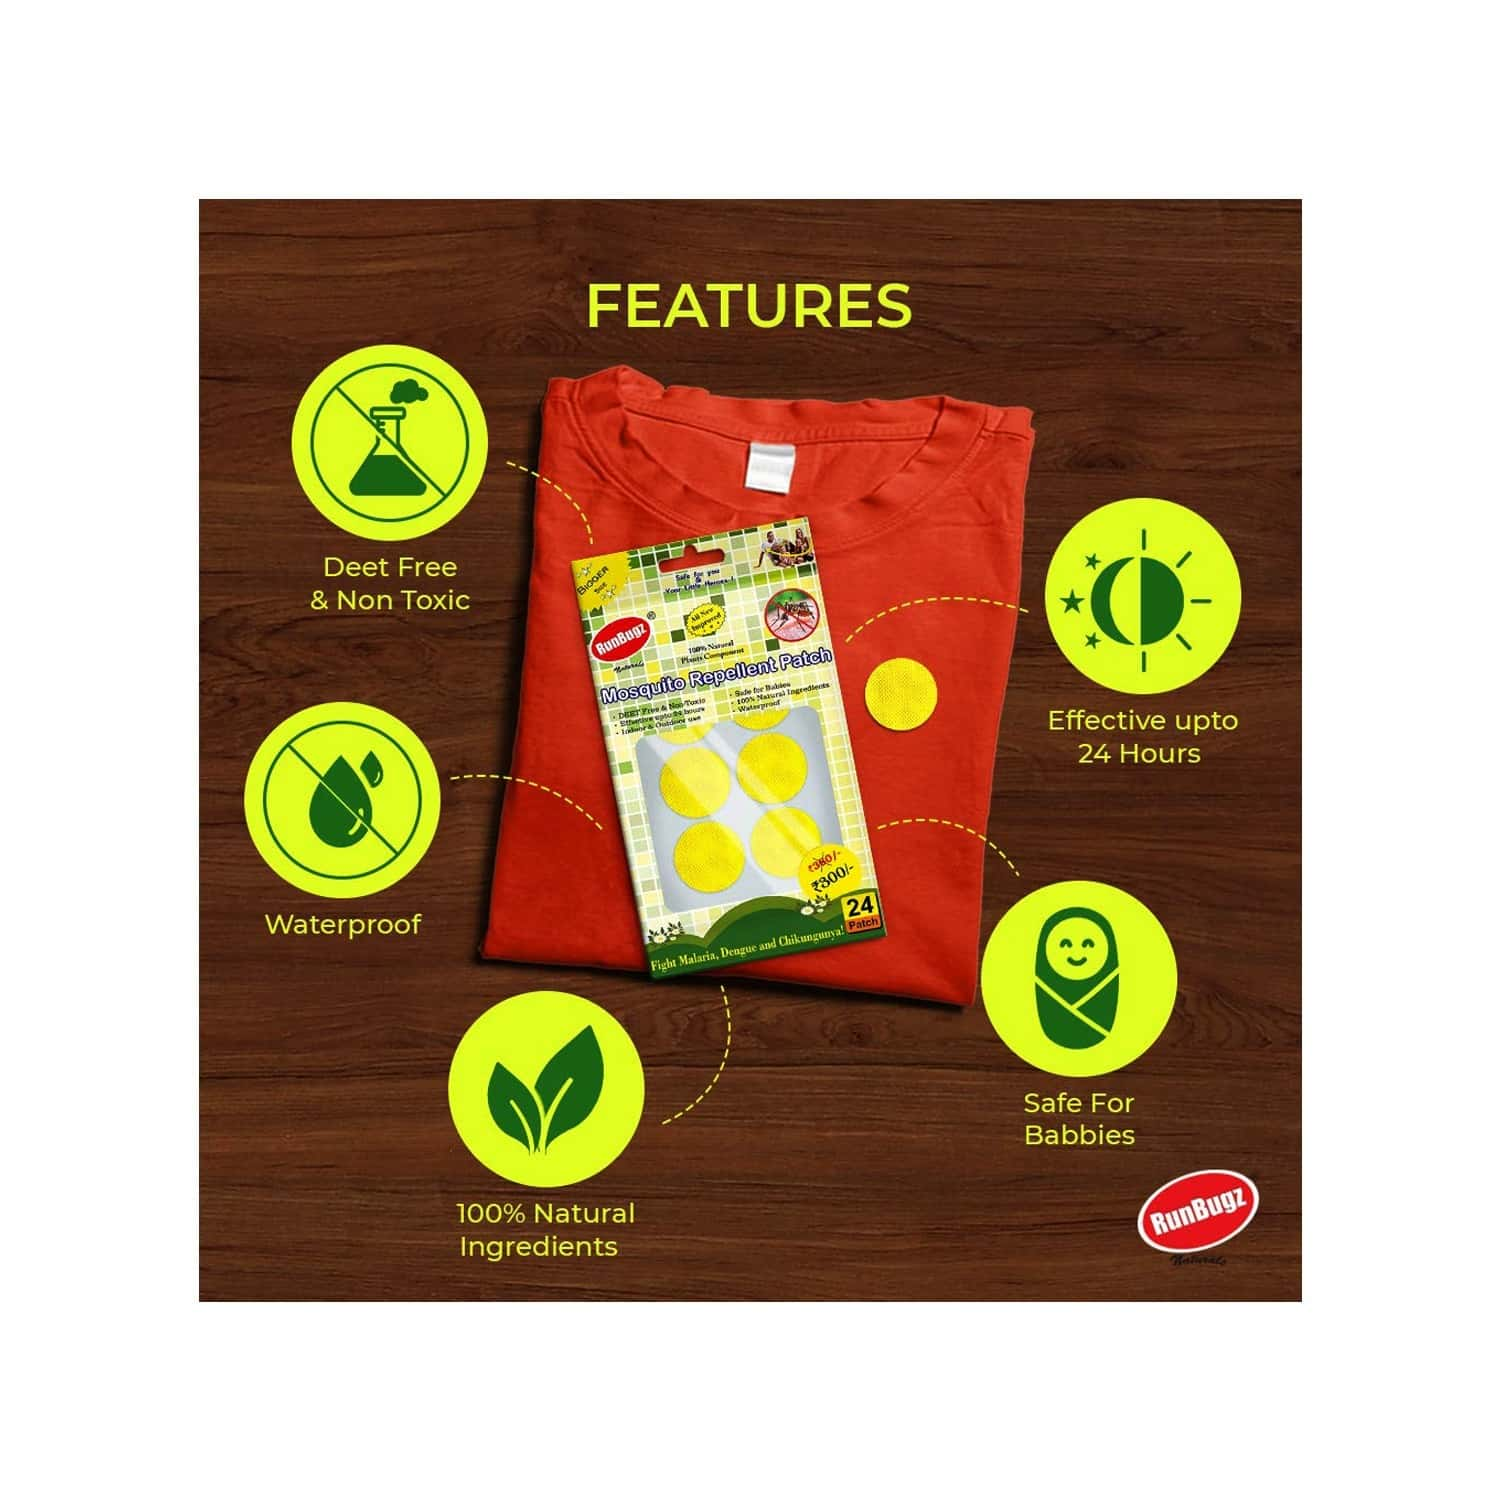 Mosquito Repellent Patches, Anti Mosquito Patch, 24 Patches - Yellow